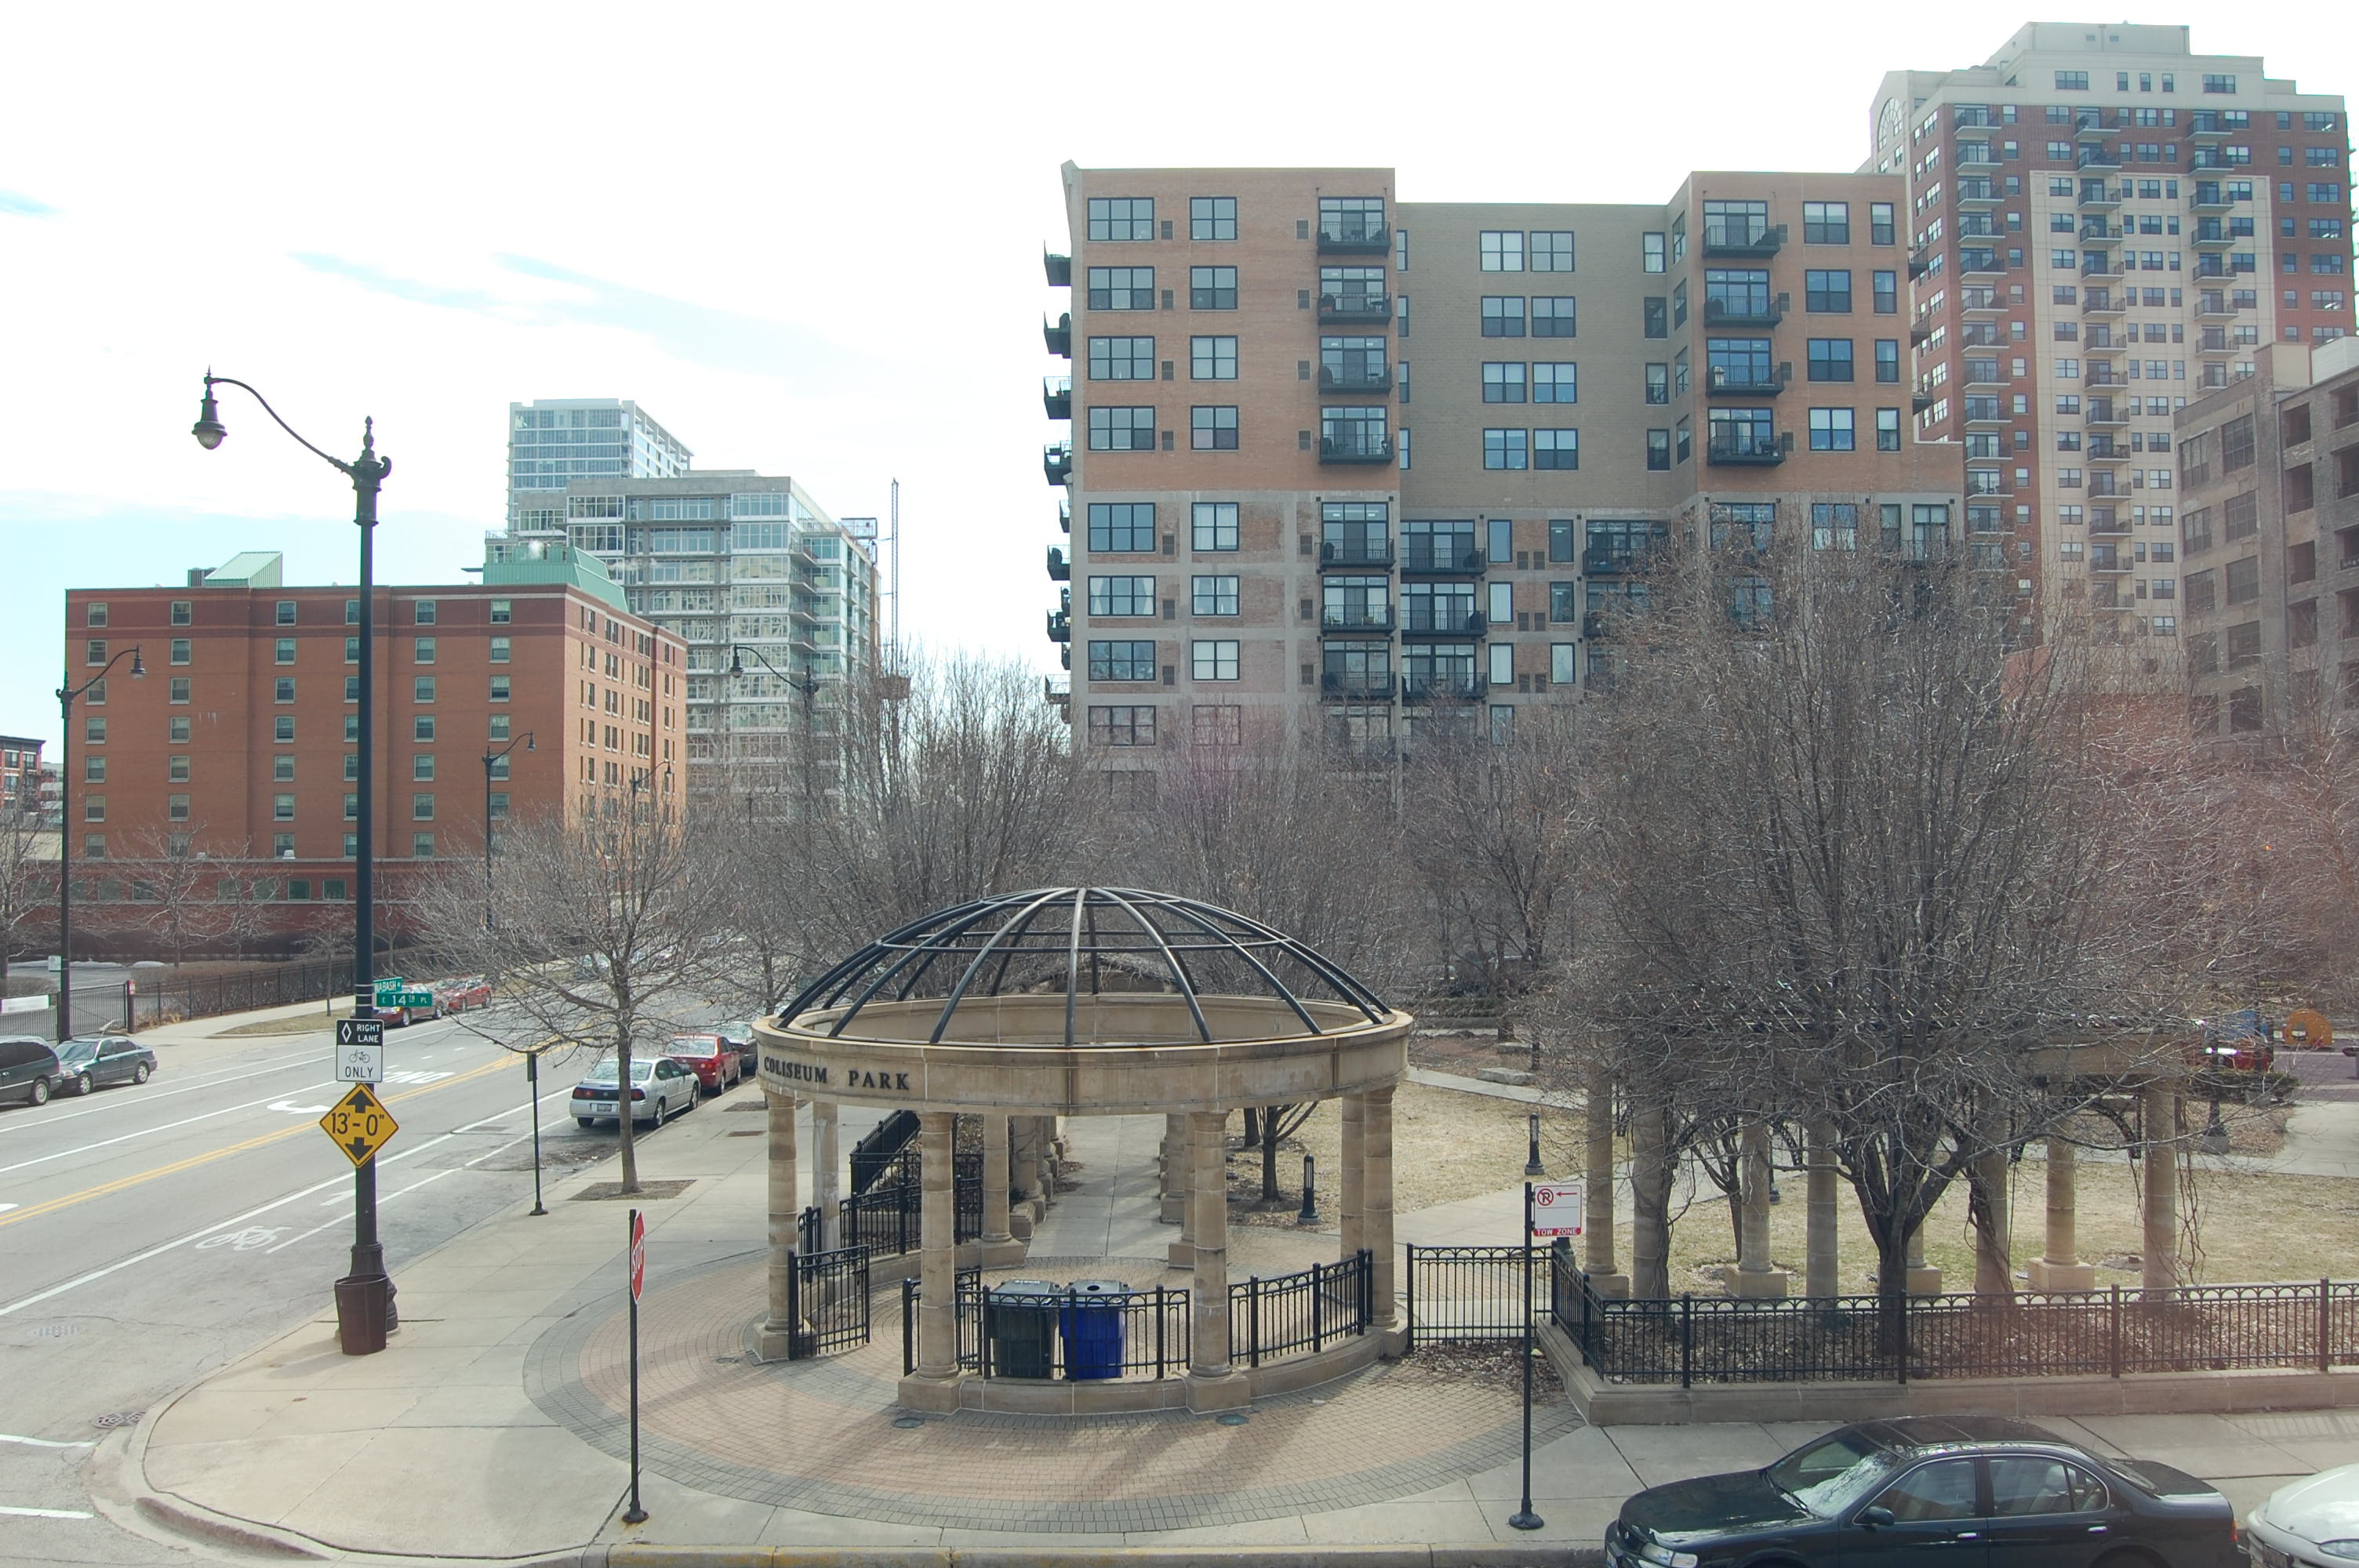 view from Coliseum Park, 1440 S Wabash Ave in South Loop, Chicago